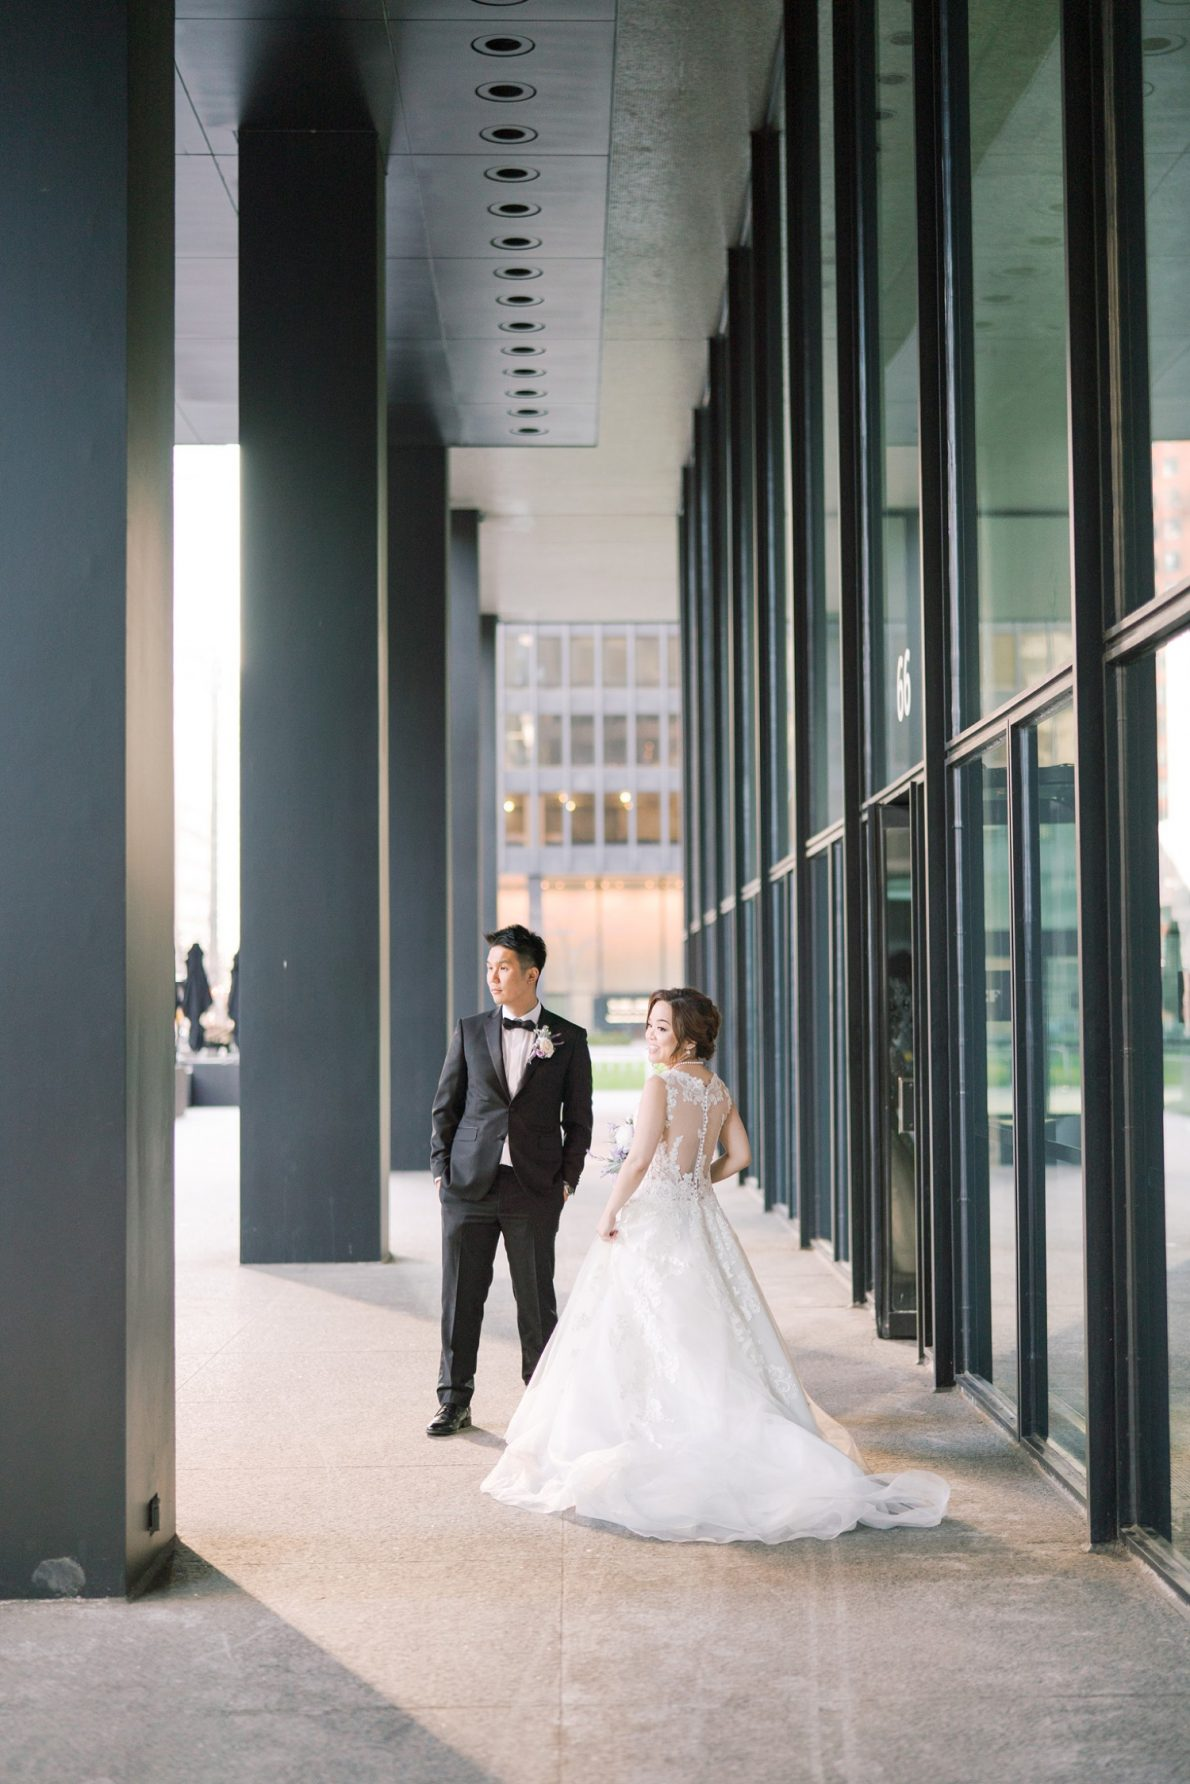 Sunset Bride and groom outdoor portraits in Downtown Toronto Financial District Toronto Wedding Photos